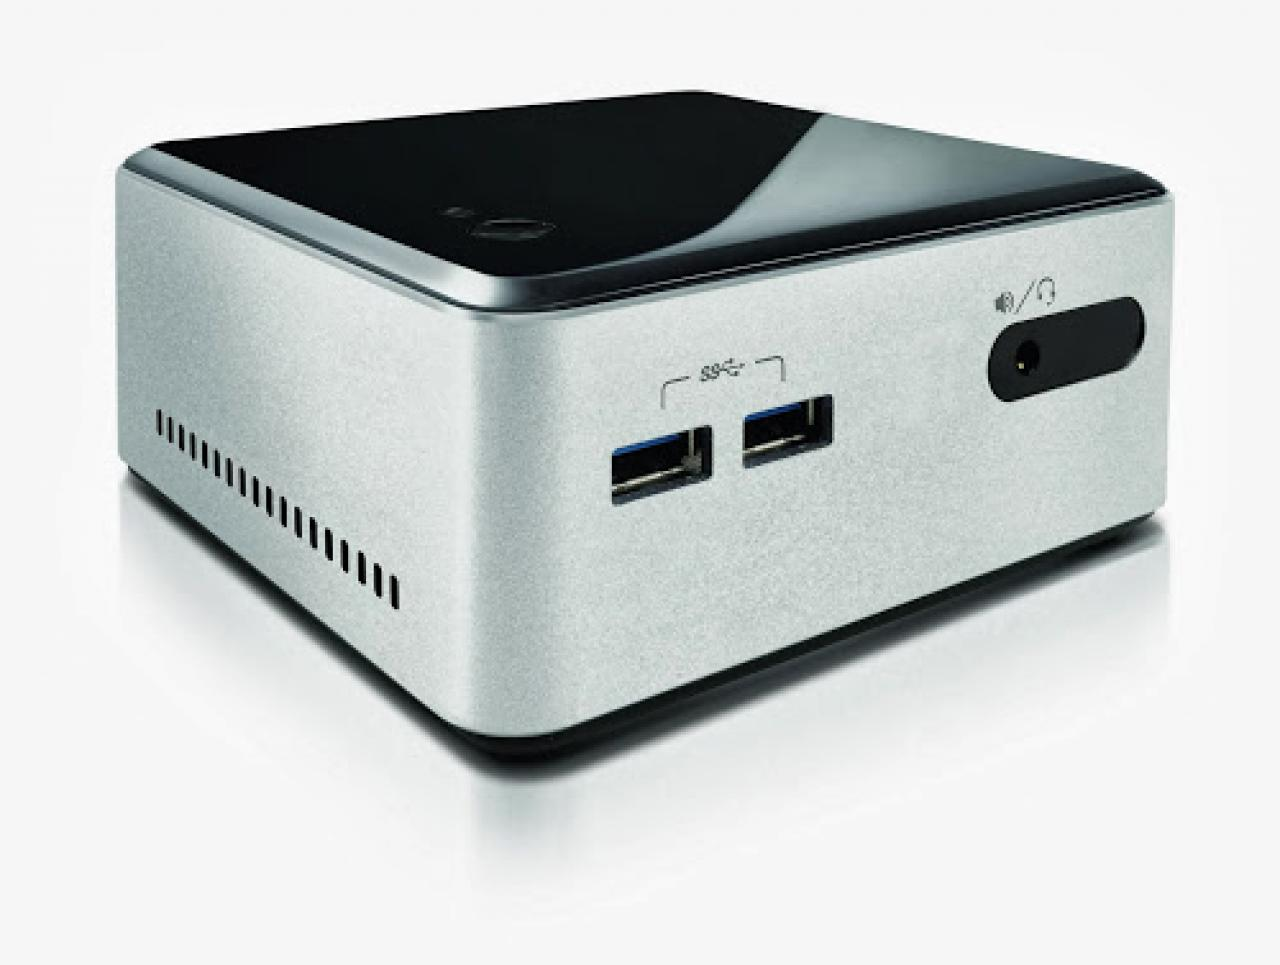 Intel nuc barebone system boxd54250wykh intel i5 integrated graphics